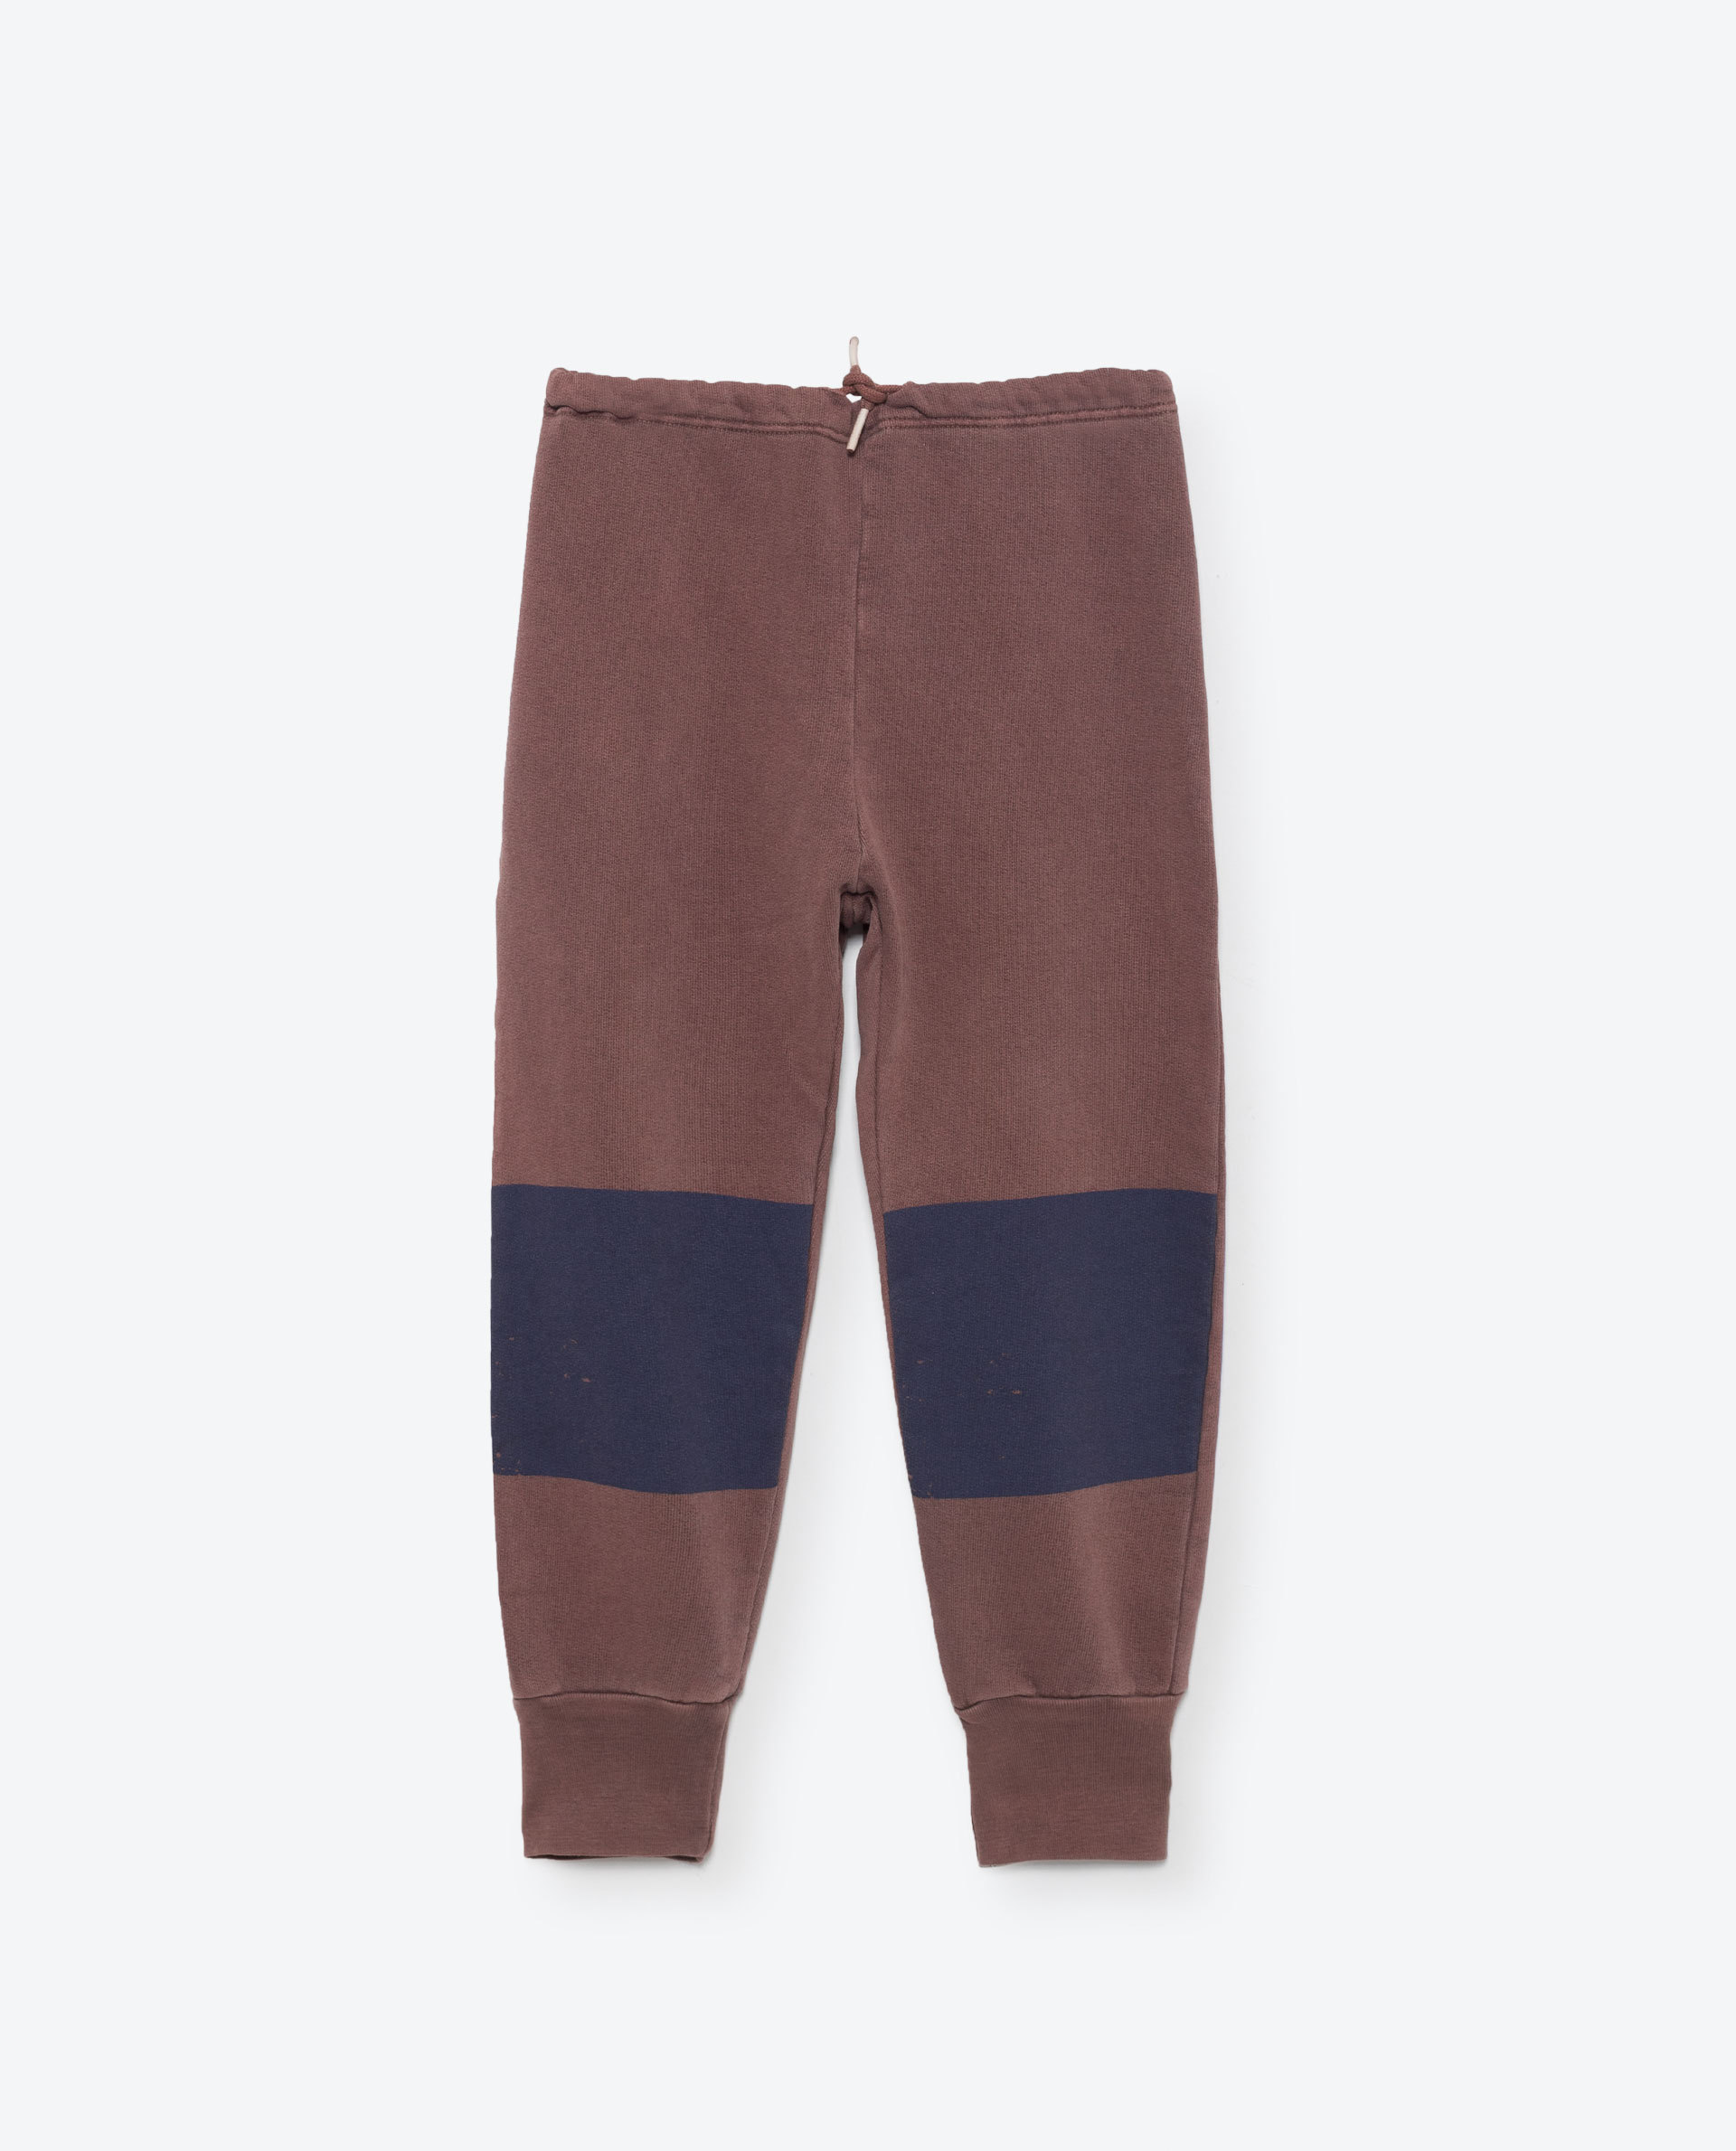 《THE ANIMALS OBSERVATORY 2016AW》MAMMOTH KIDS PANTS / Deep Brown Knees